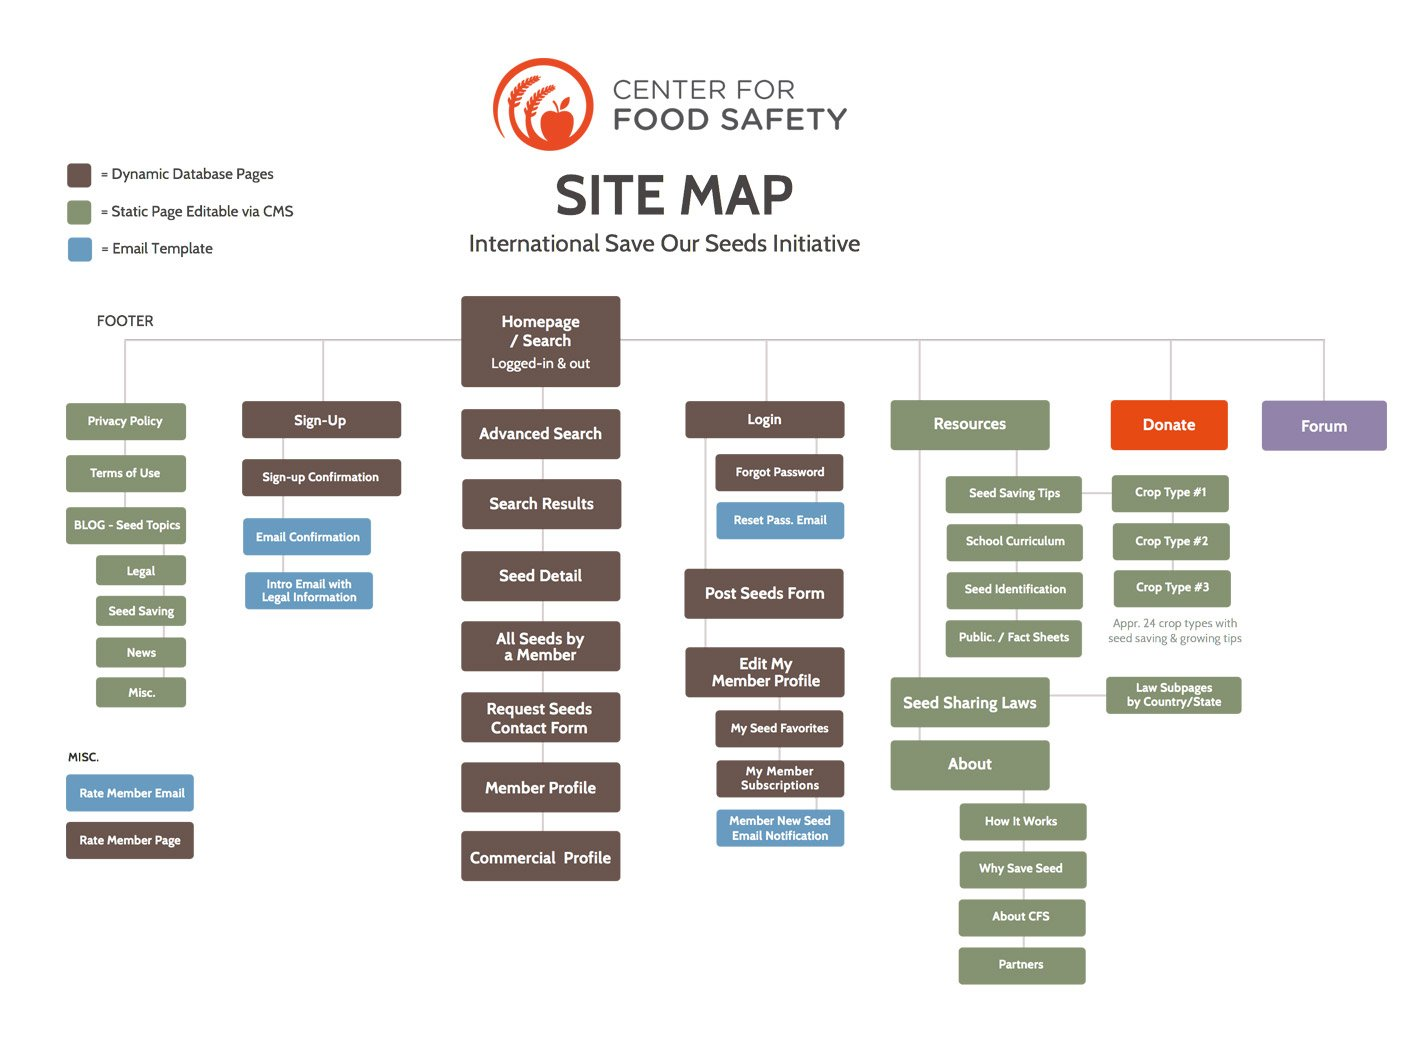 architecture information website sitemap web global ux sharing way seed source create altexsoft examples experience user step network